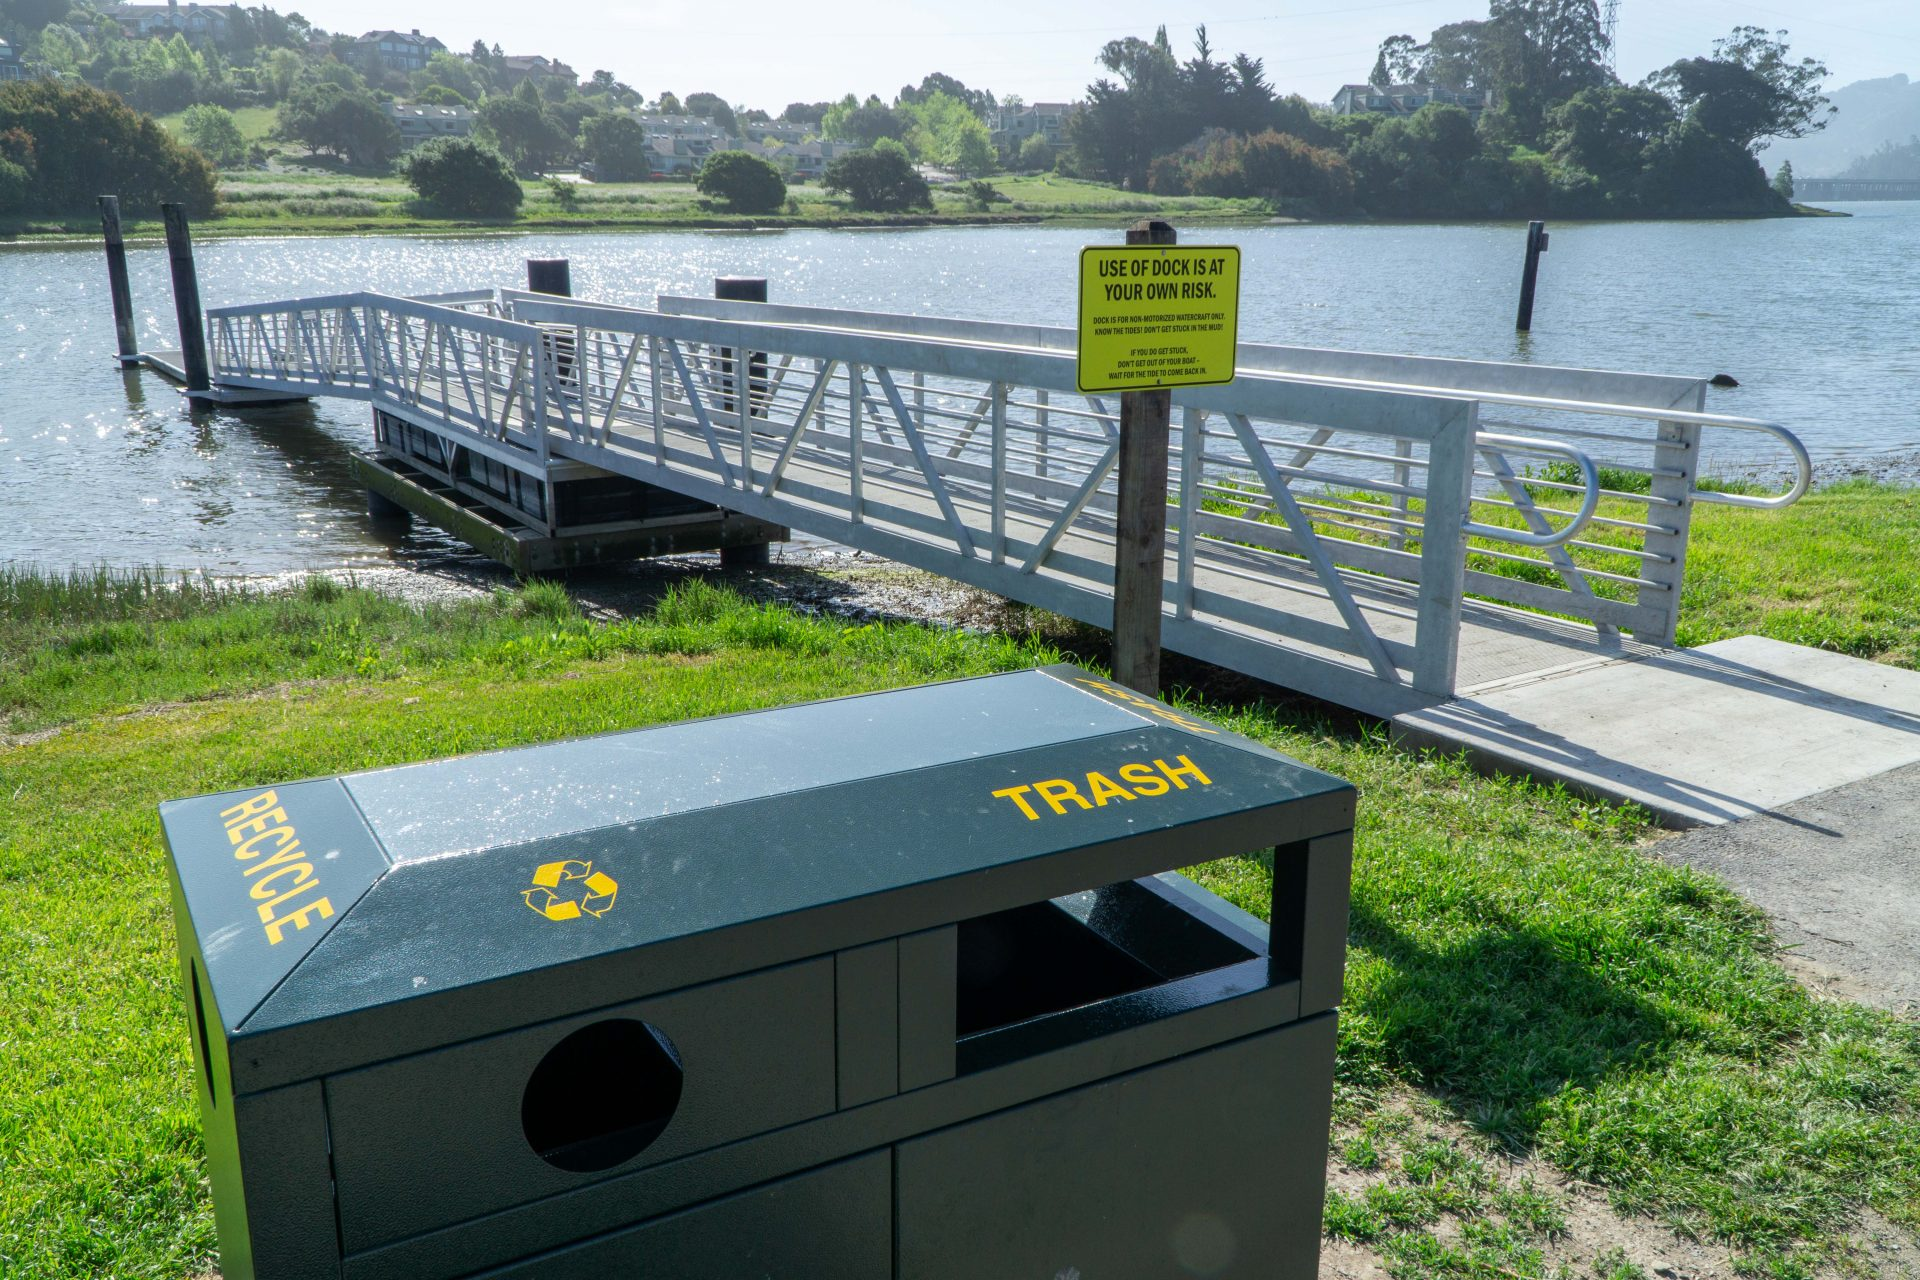 trash cans, ramp to dock beyond